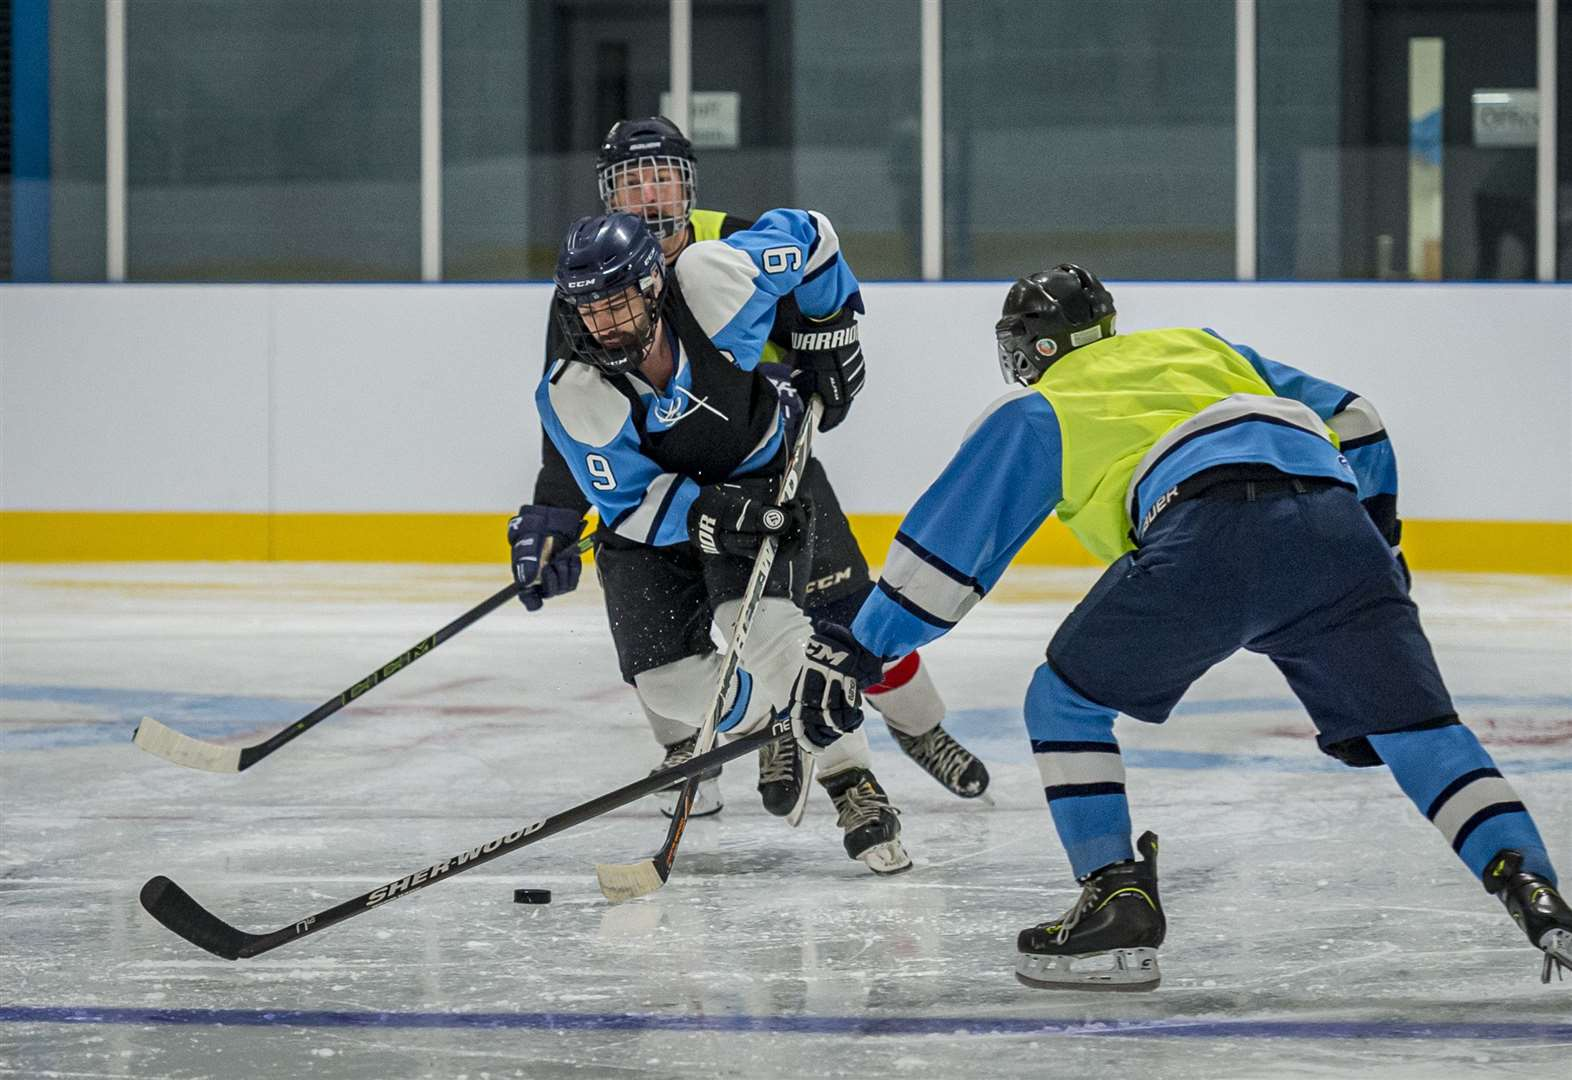 Ice hockey arrives in Cambridge with official opening of the Ice Arena and Gattiker Ice Rink